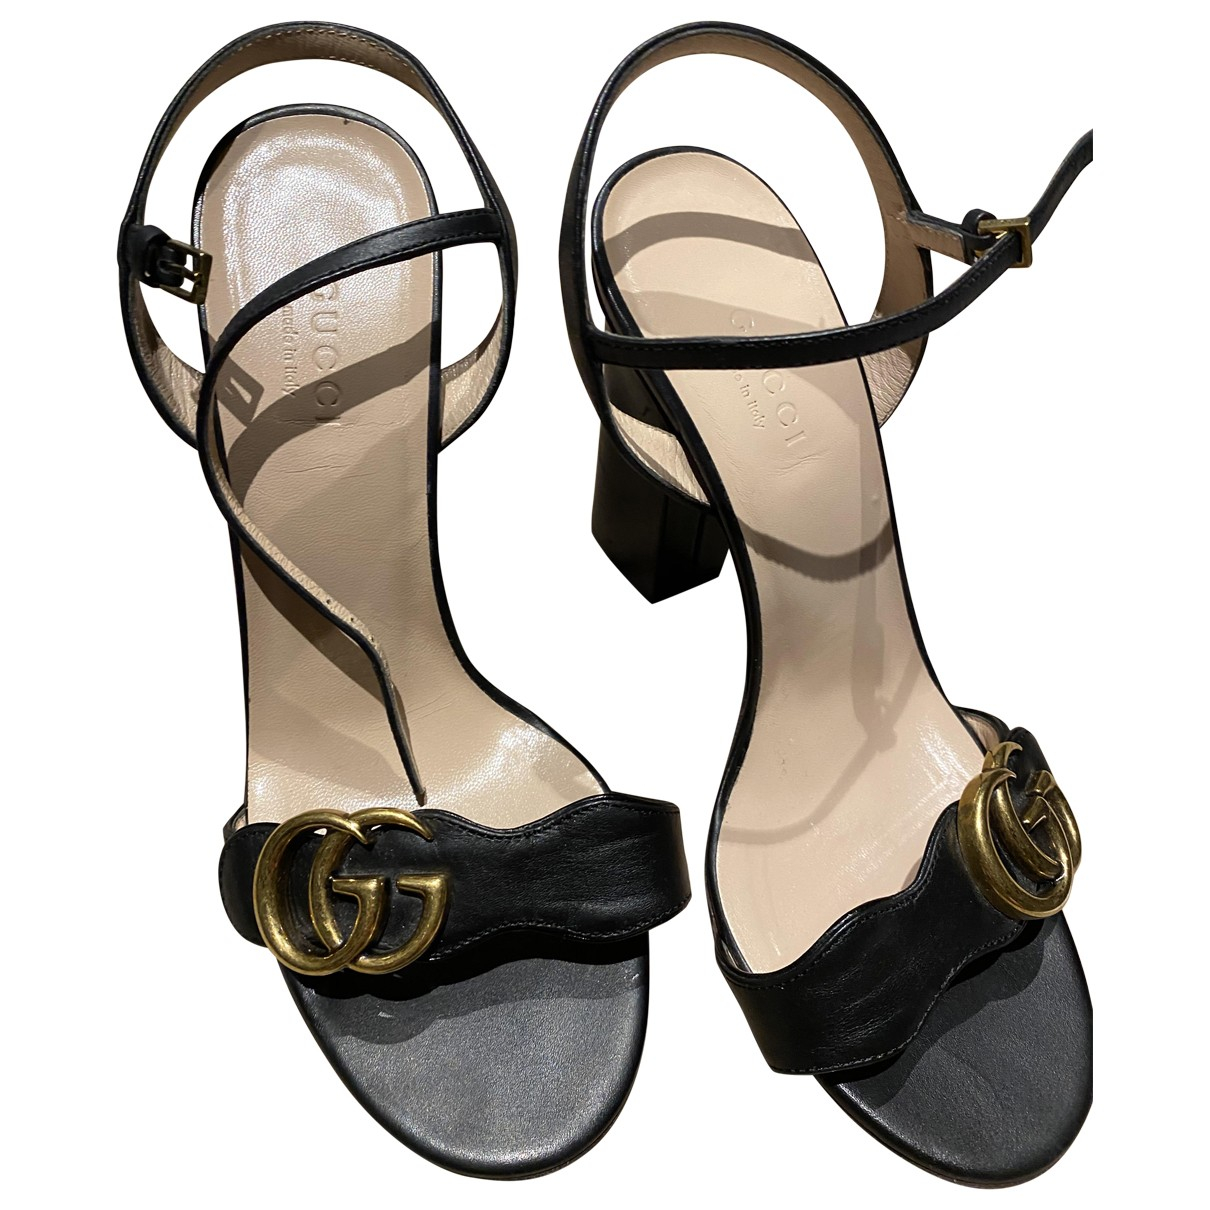 Gucci Marmont Black Leather Sandals for Women 36 EU